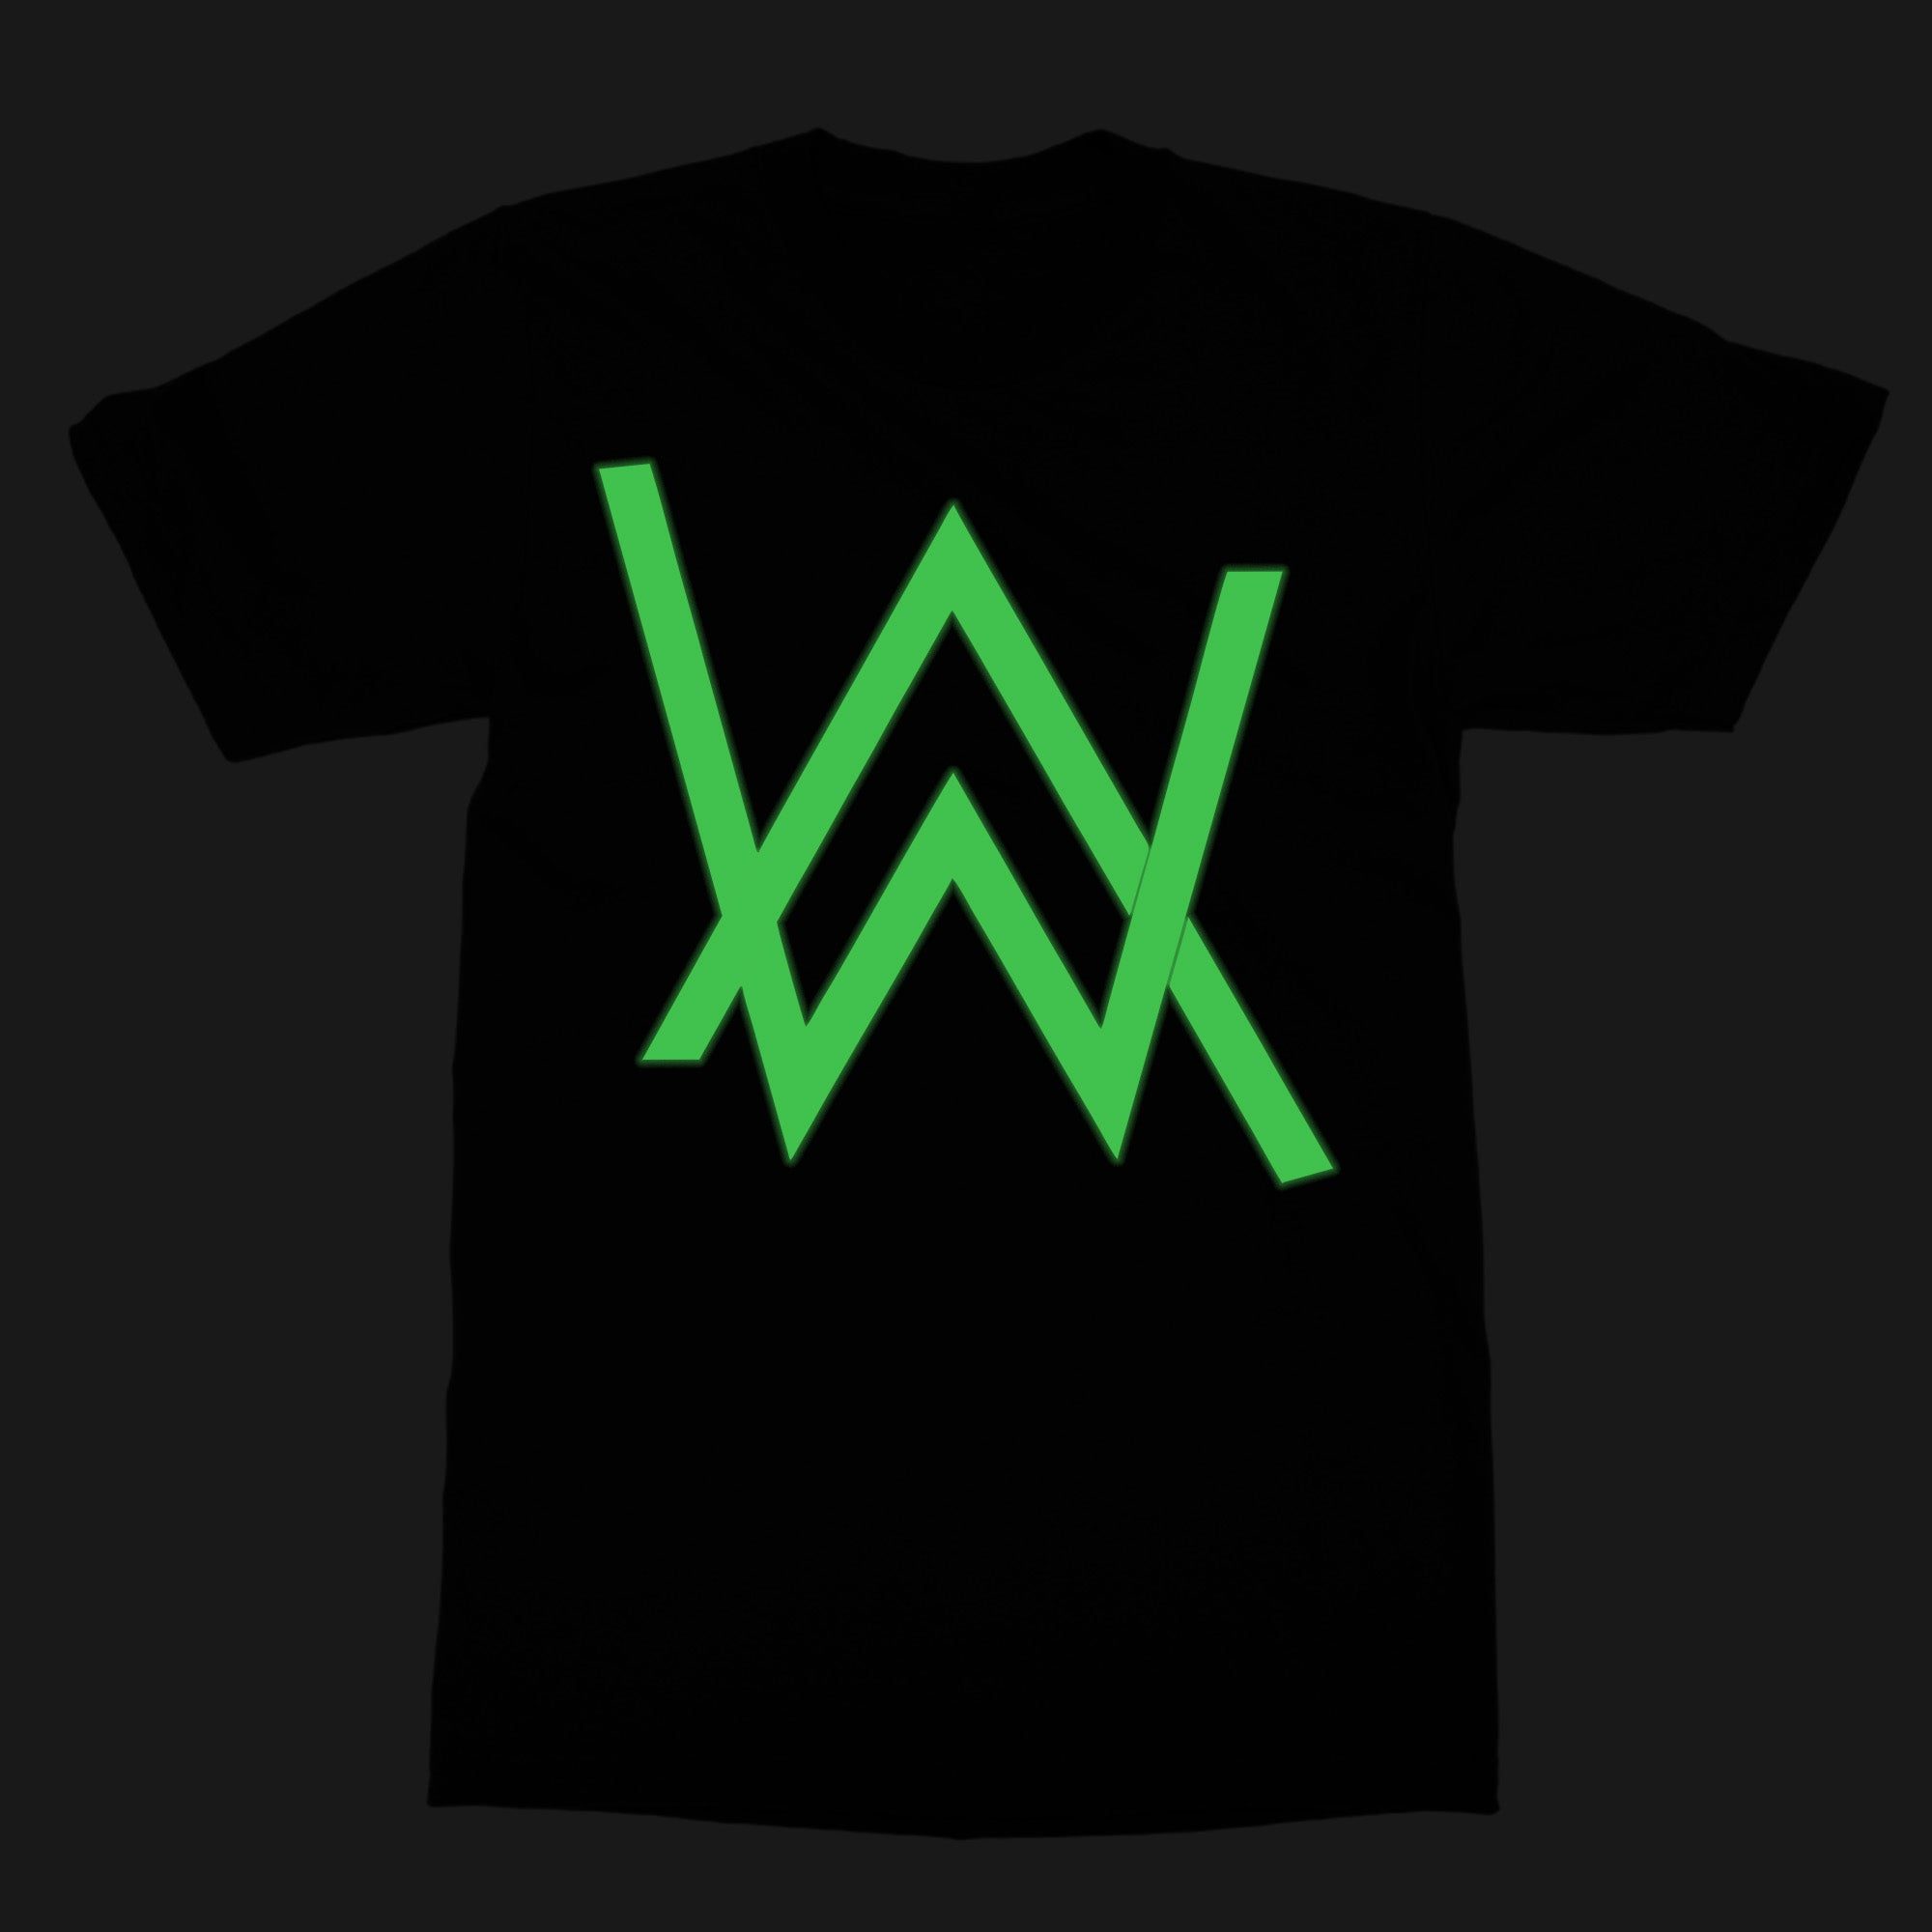 f2f46ebd Alan Walker Glow in the dark Tshirt in India by Sillypunter - Silly ...